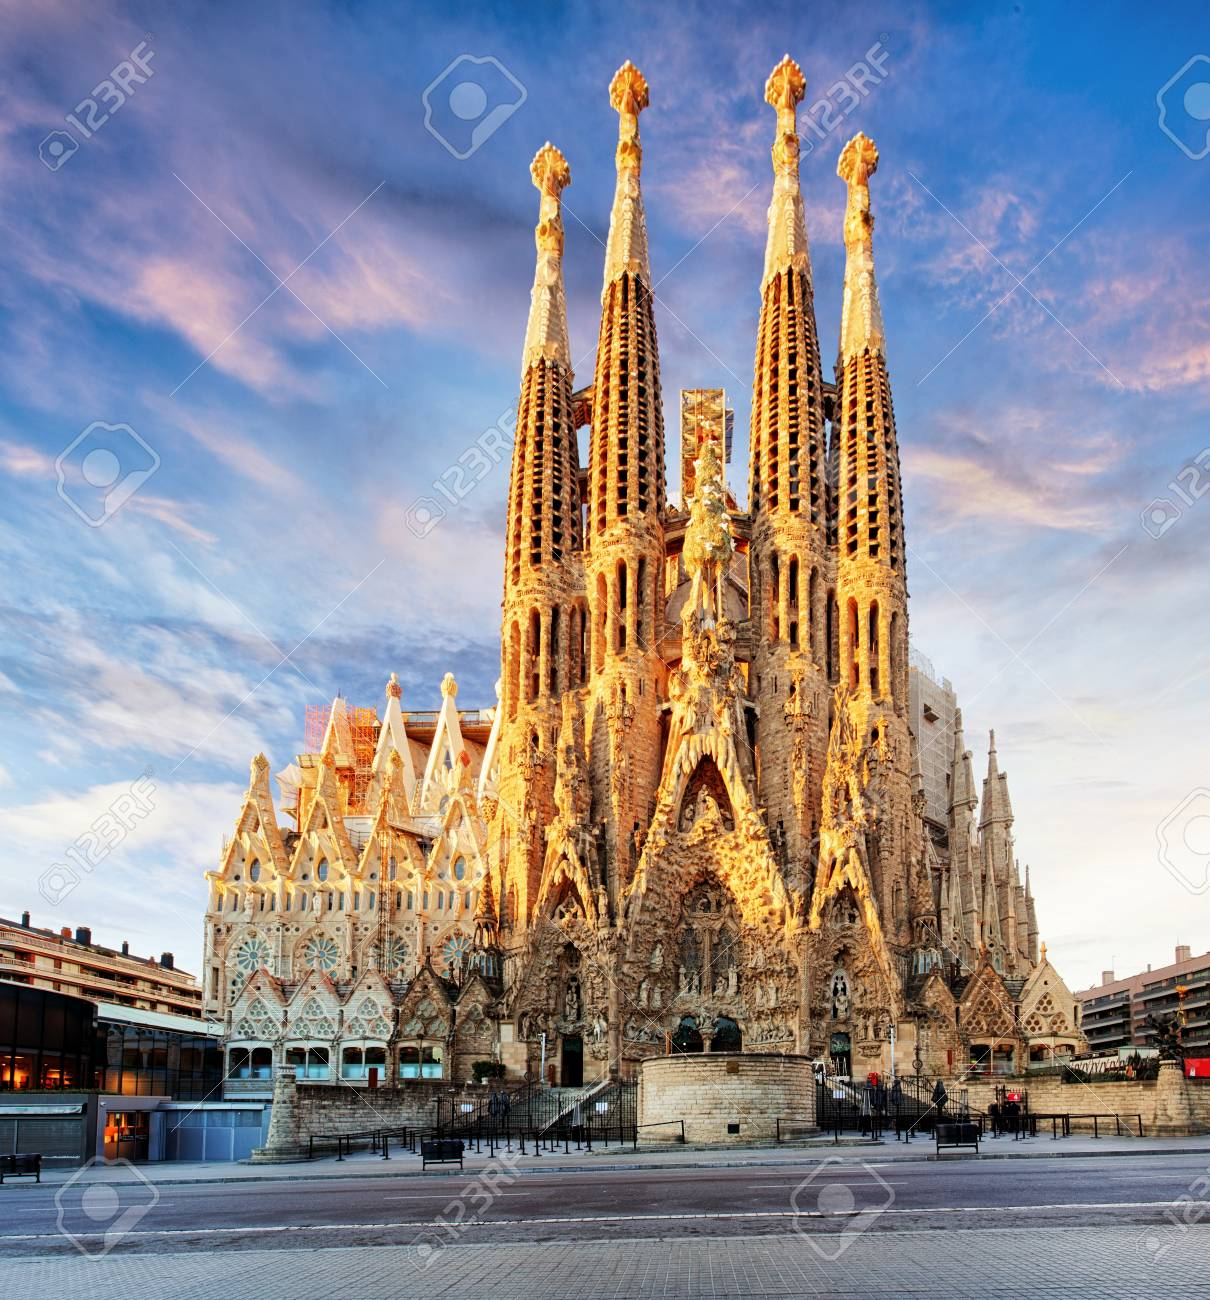 Barcelona Spain Feb 10 View Of The Sagrada Familia A Large Stock Photo Picture And Royalty Free Image Image 56983742